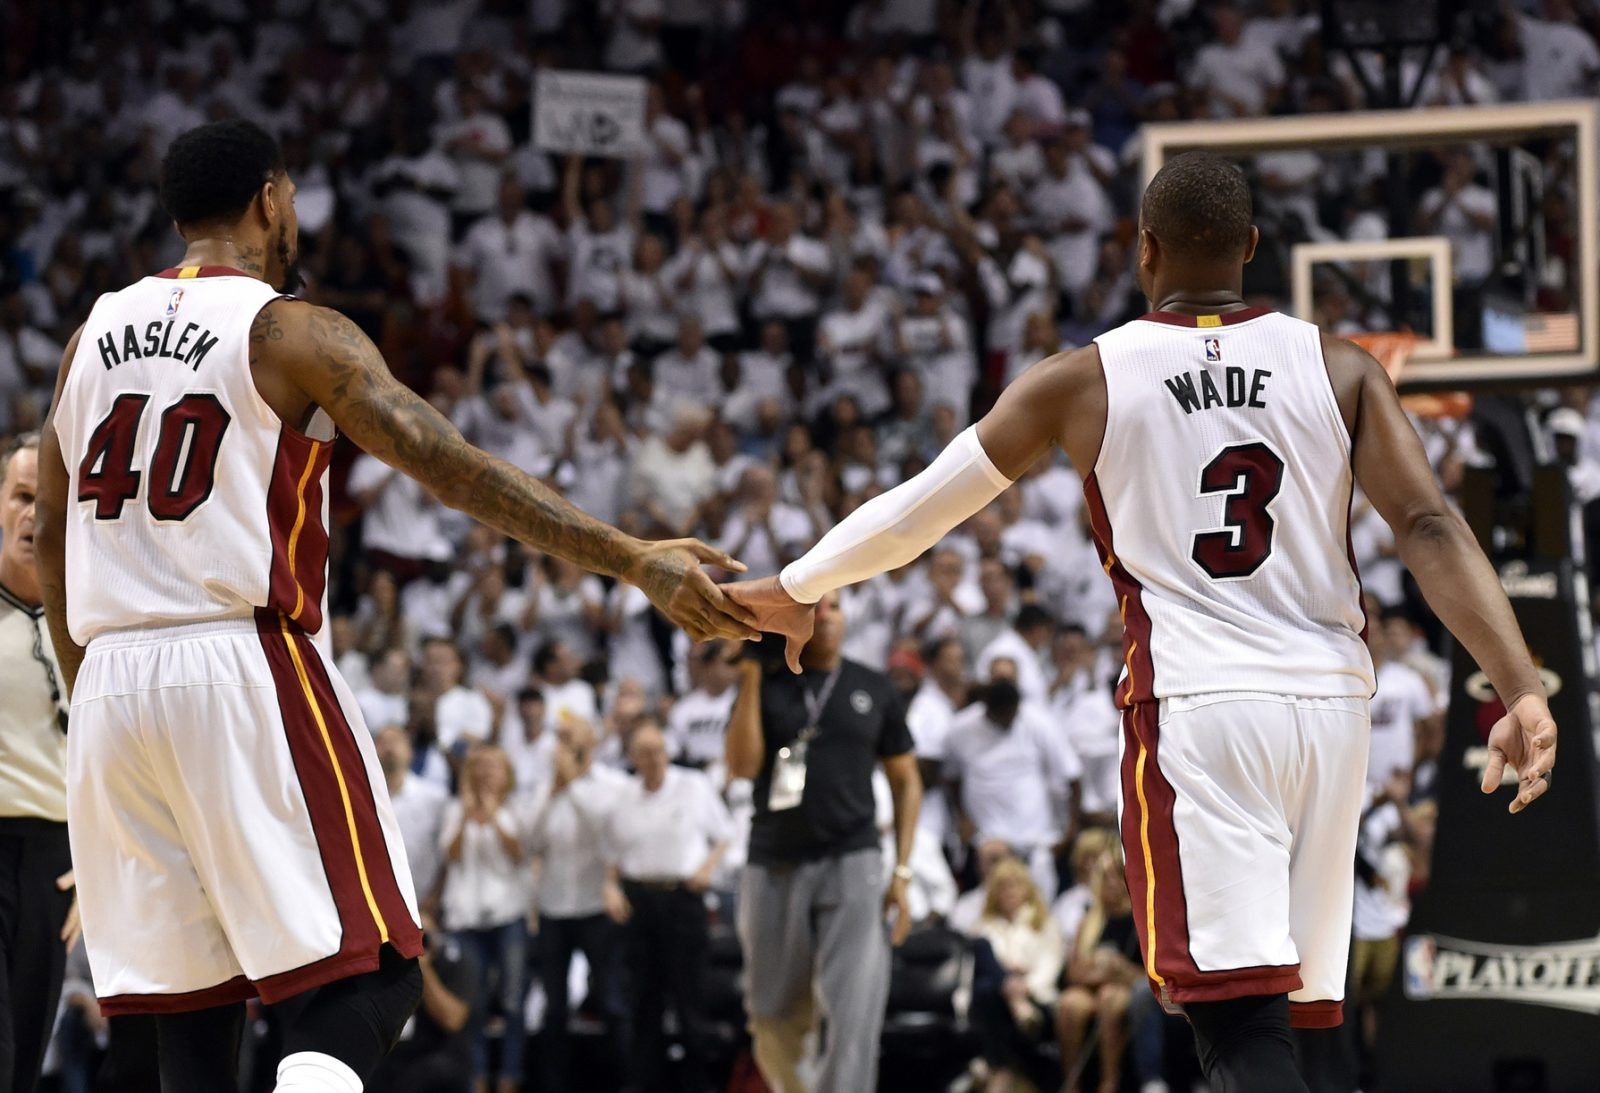 Dwyane Wade and Udonis Haslem